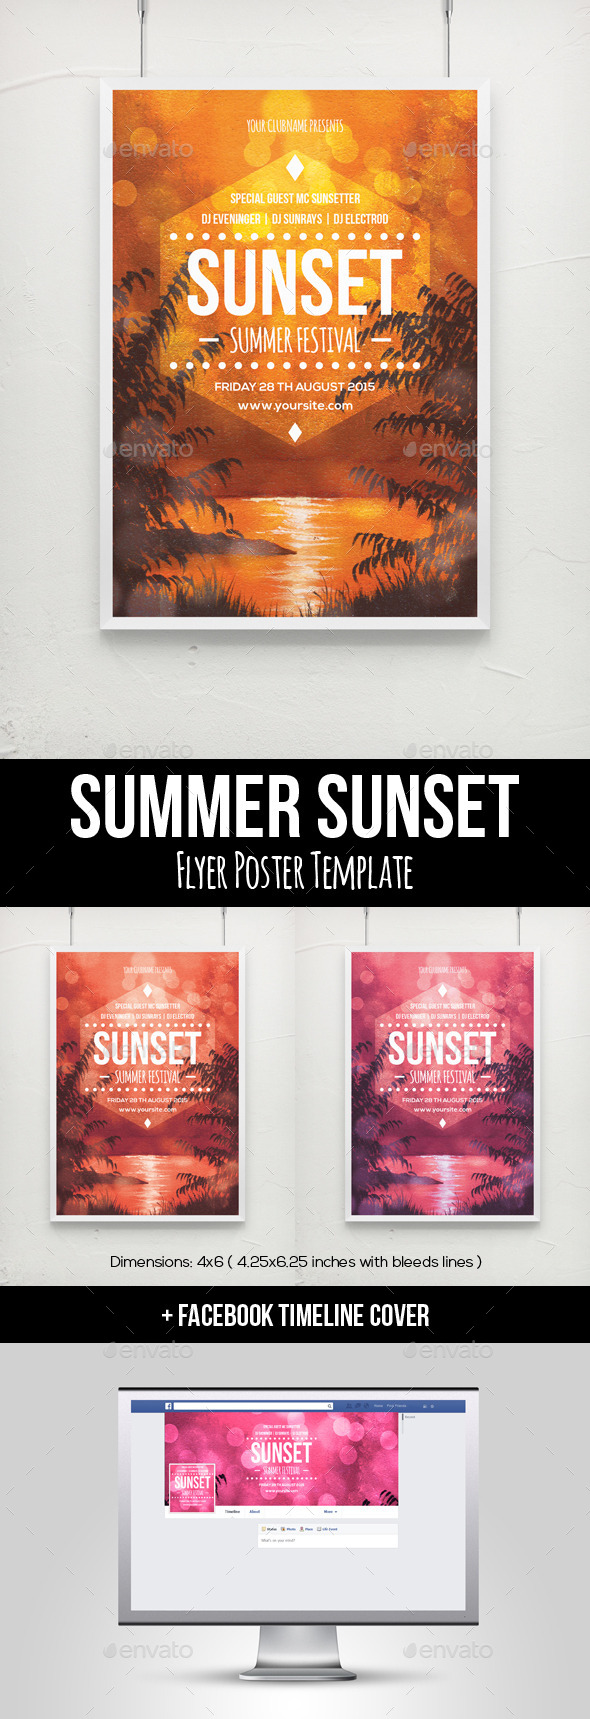 GraphicRiver Summer Sunset Flyer Poster Template 11955930